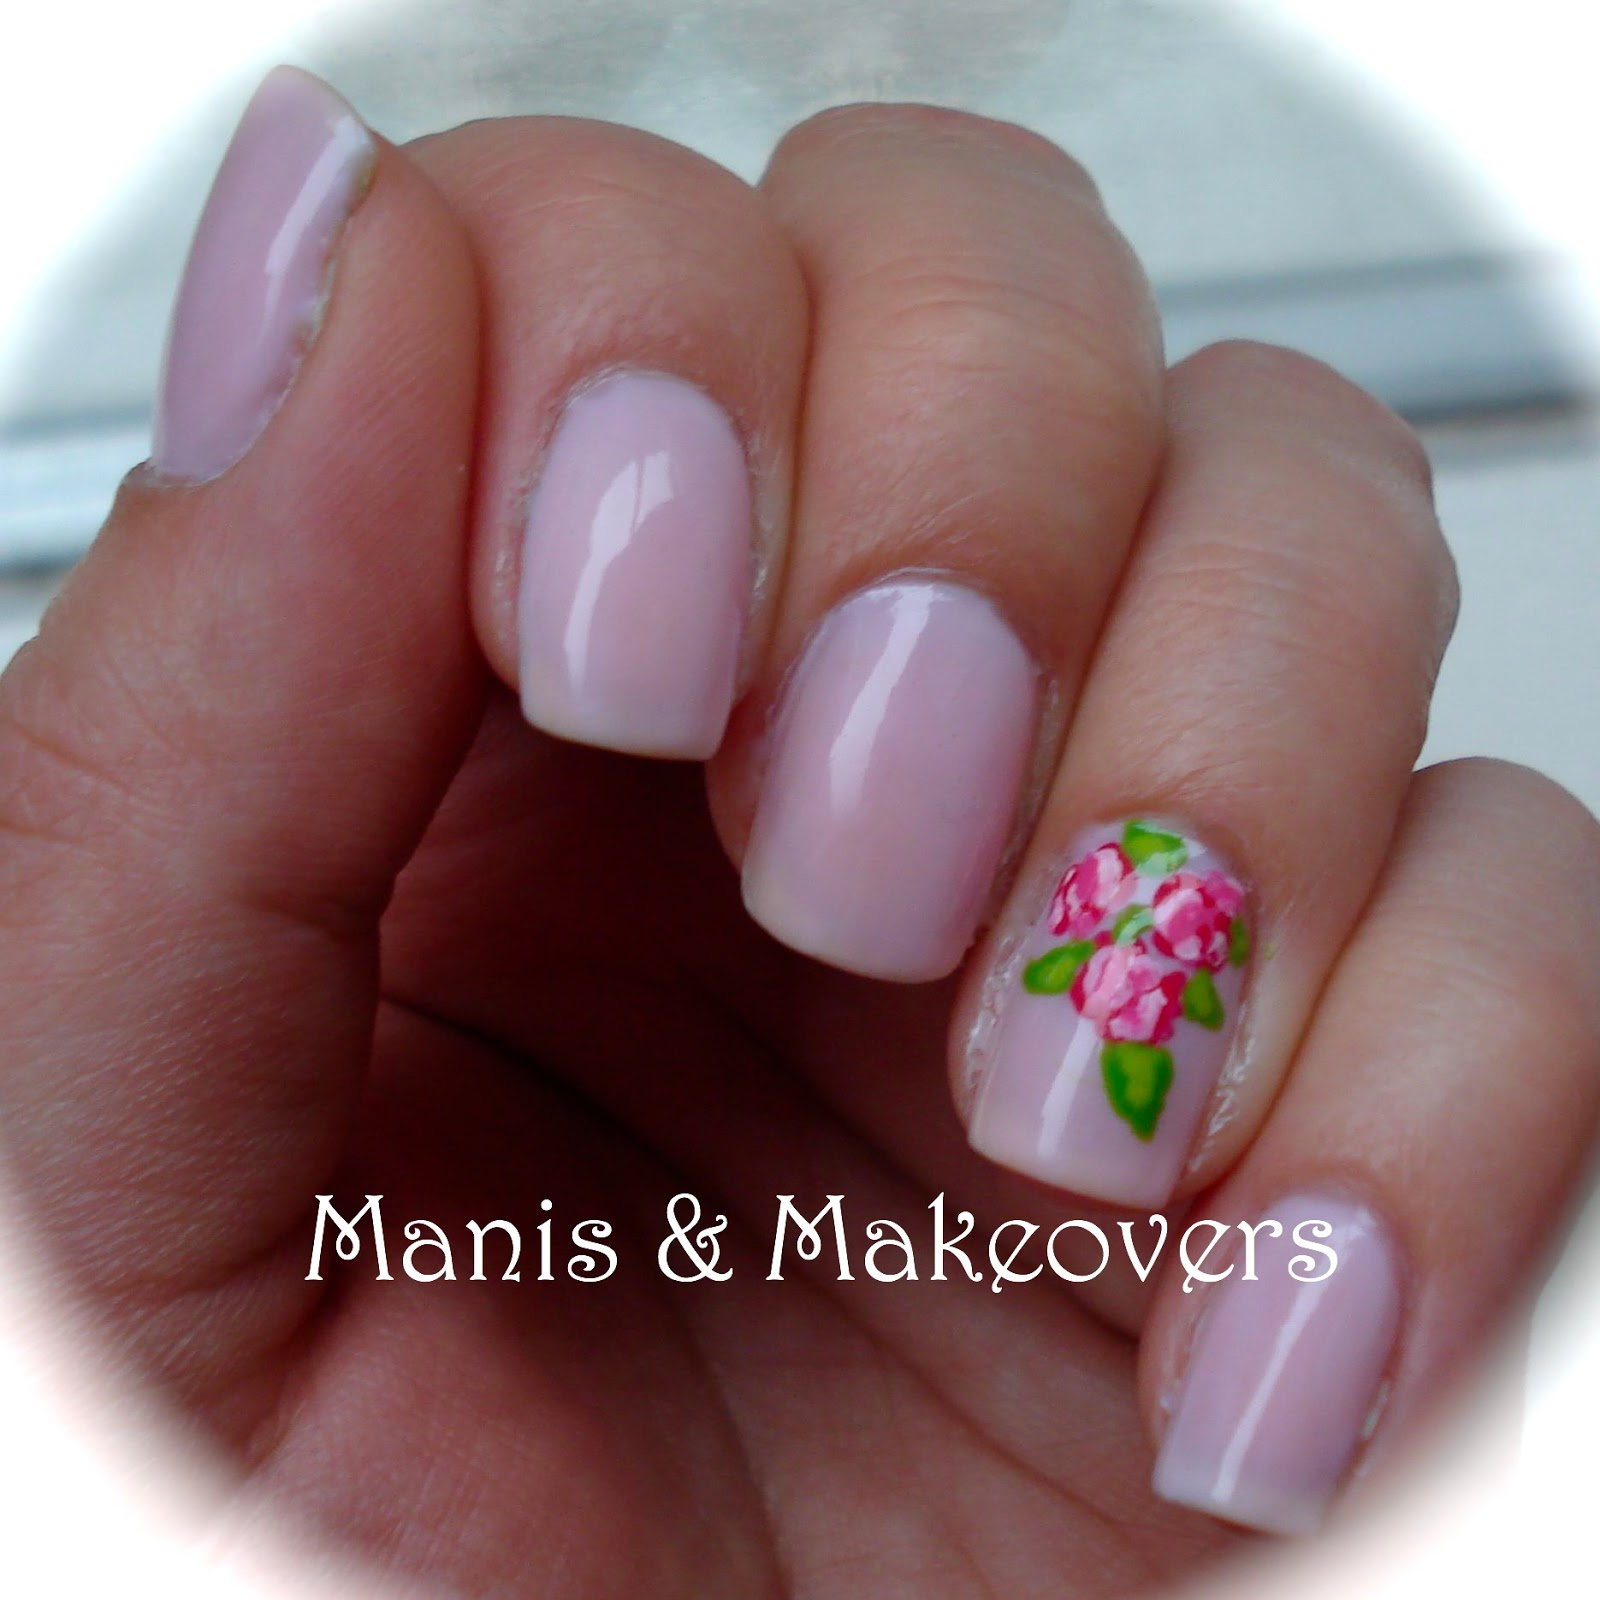 Manis & Makeovers: Simple classy job interview mani